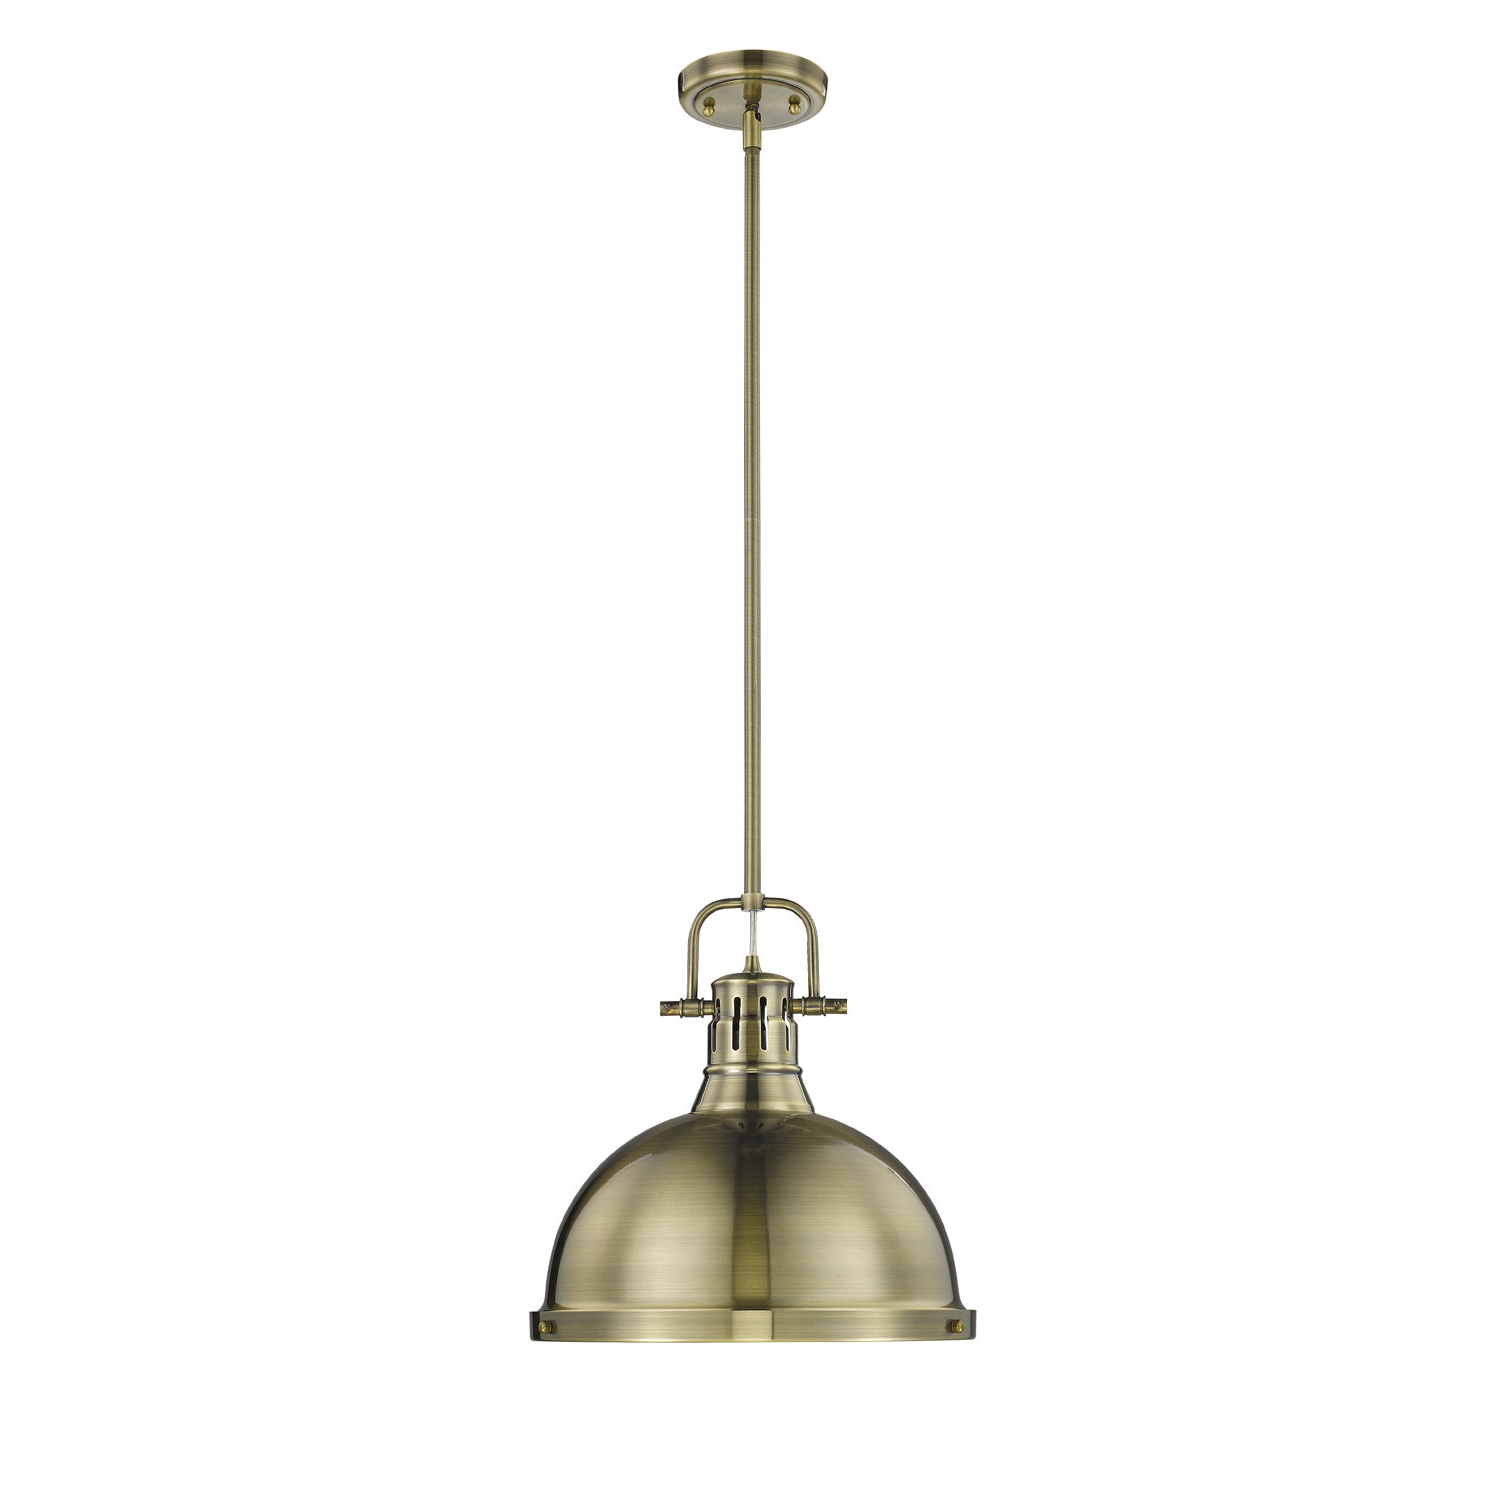 Bodalla 1 Light Single Dome Pendant With Regard To Most Recently Released Southlake 1 Light Single Dome Pendants (View 2 of 25)